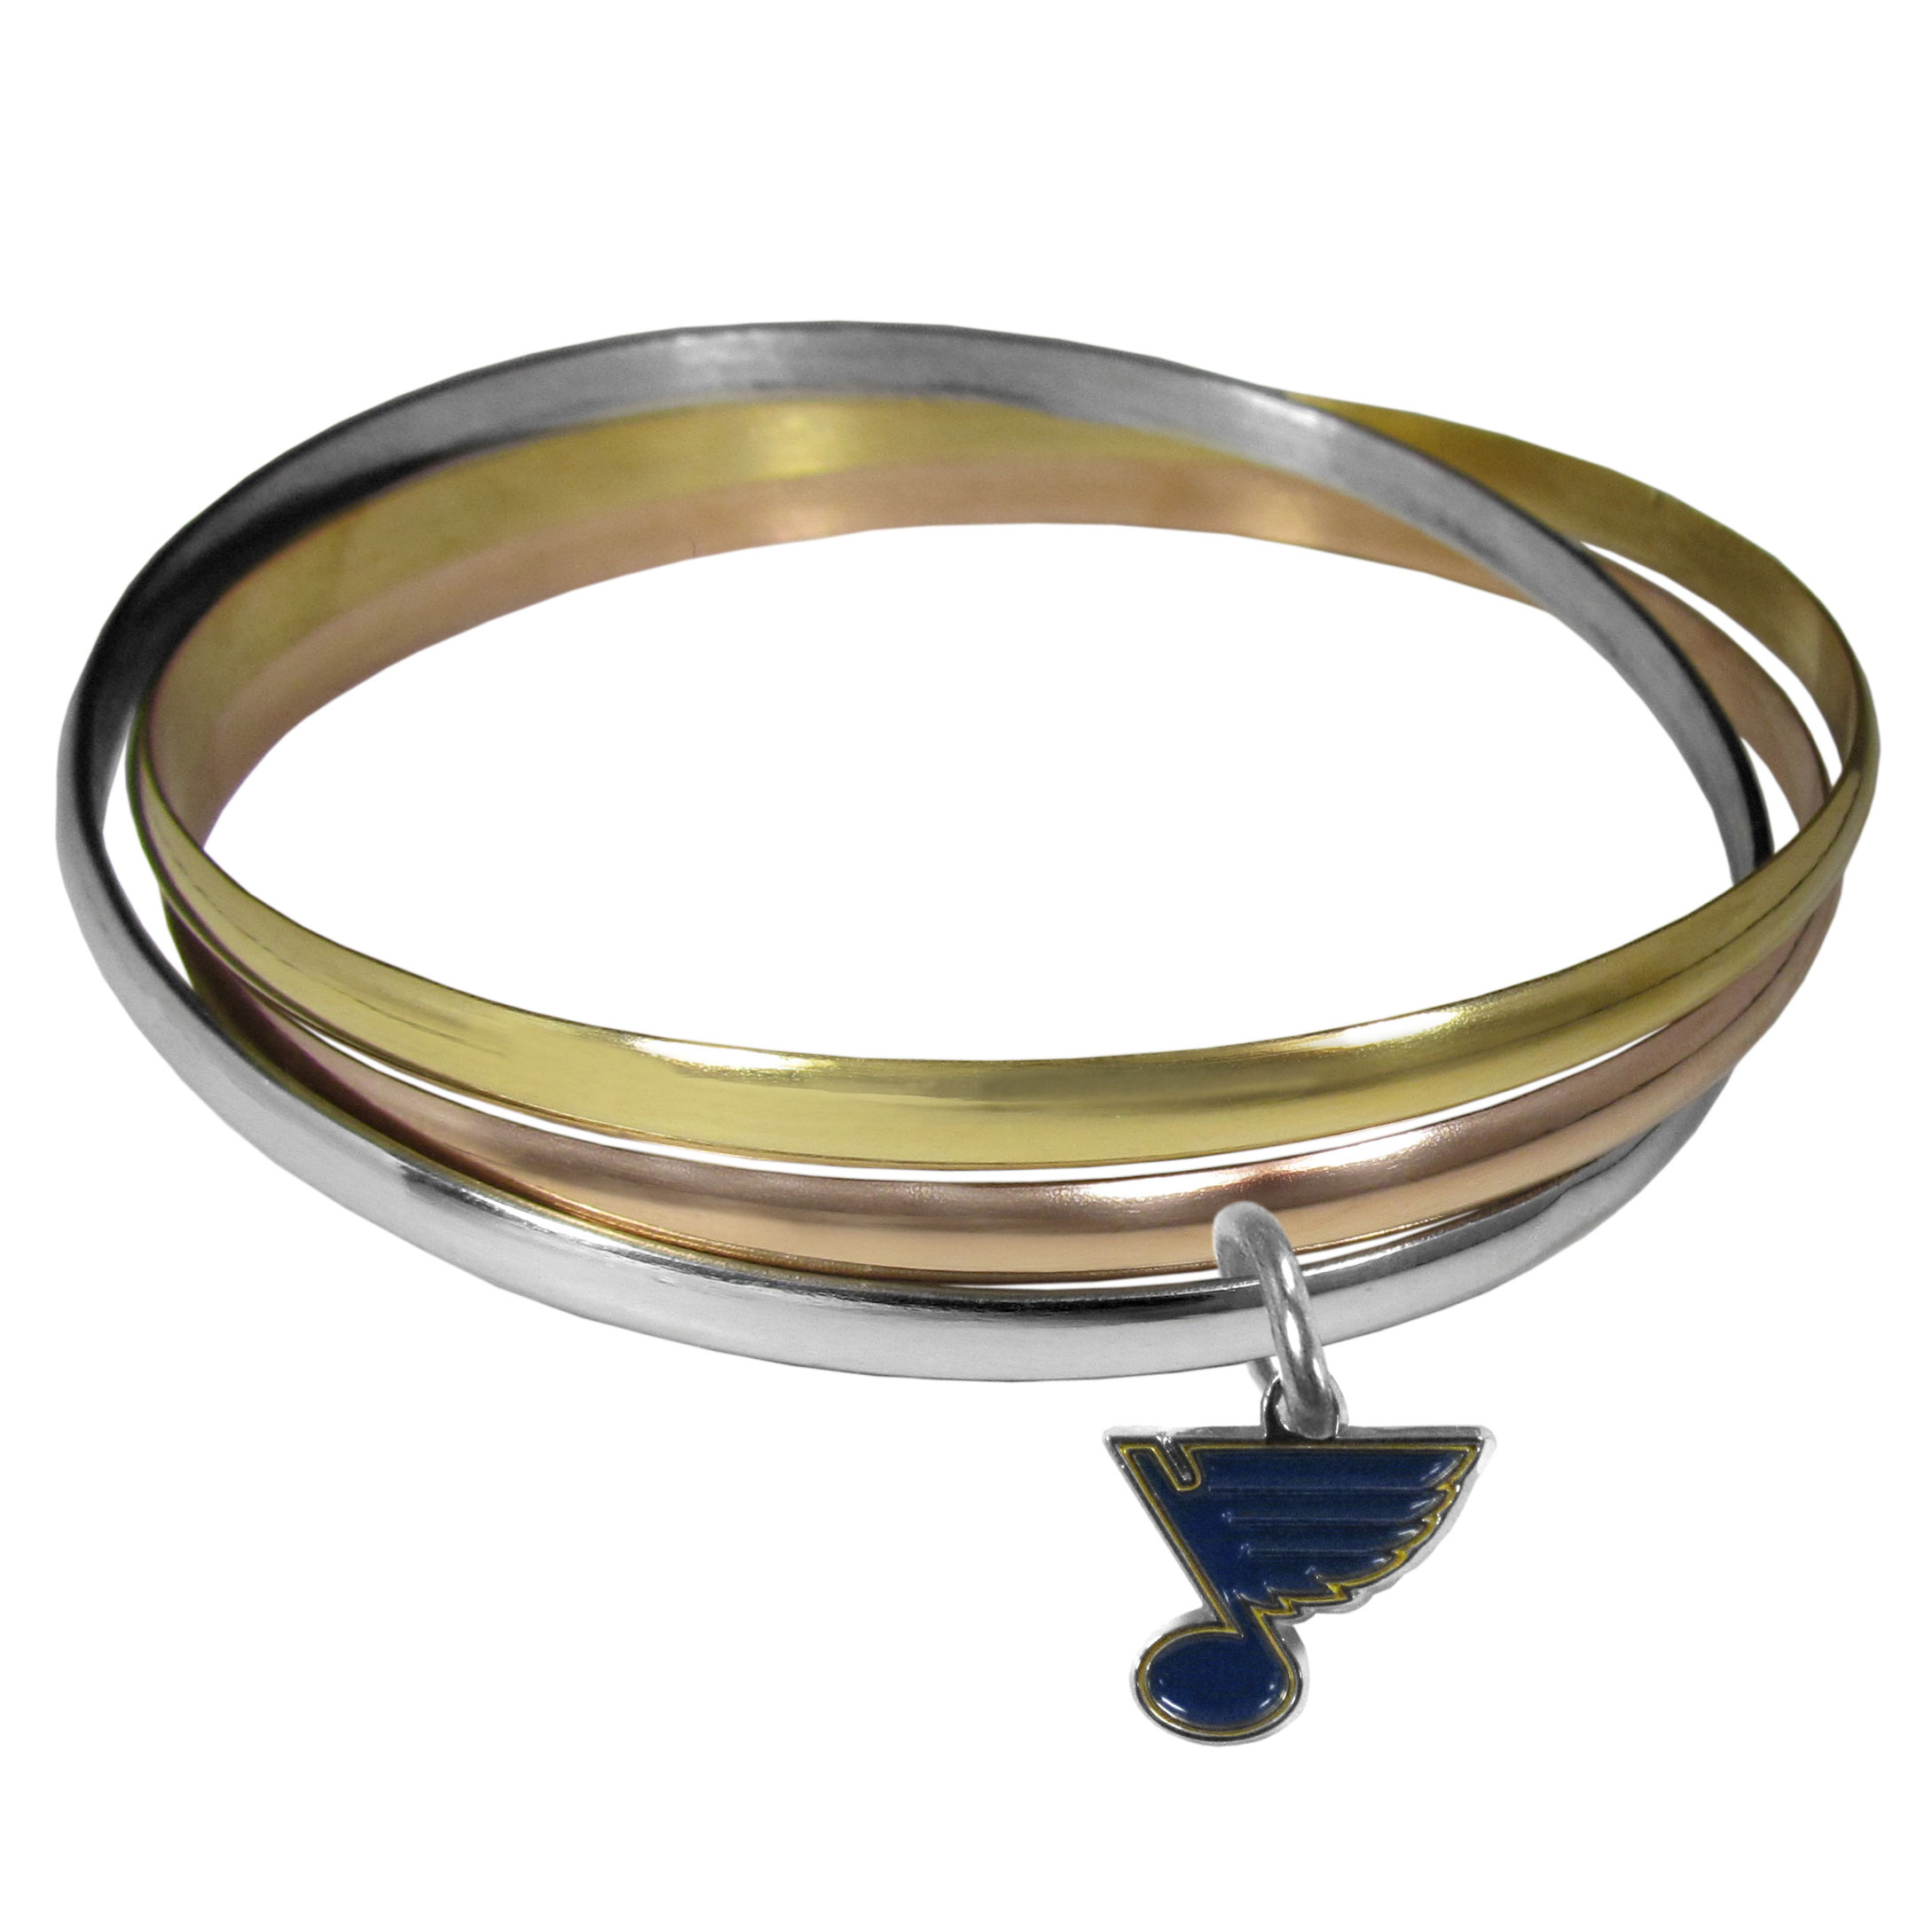 St. Louis Blues® Tri-color Bangle Bracelet - These beautiful bangles come in a interlocking style and feature a fully cast St. Louis Blues® charm with enameled team colors. The bracelet has a silver toned bangle, gold tone bangle and brass toned bangle.